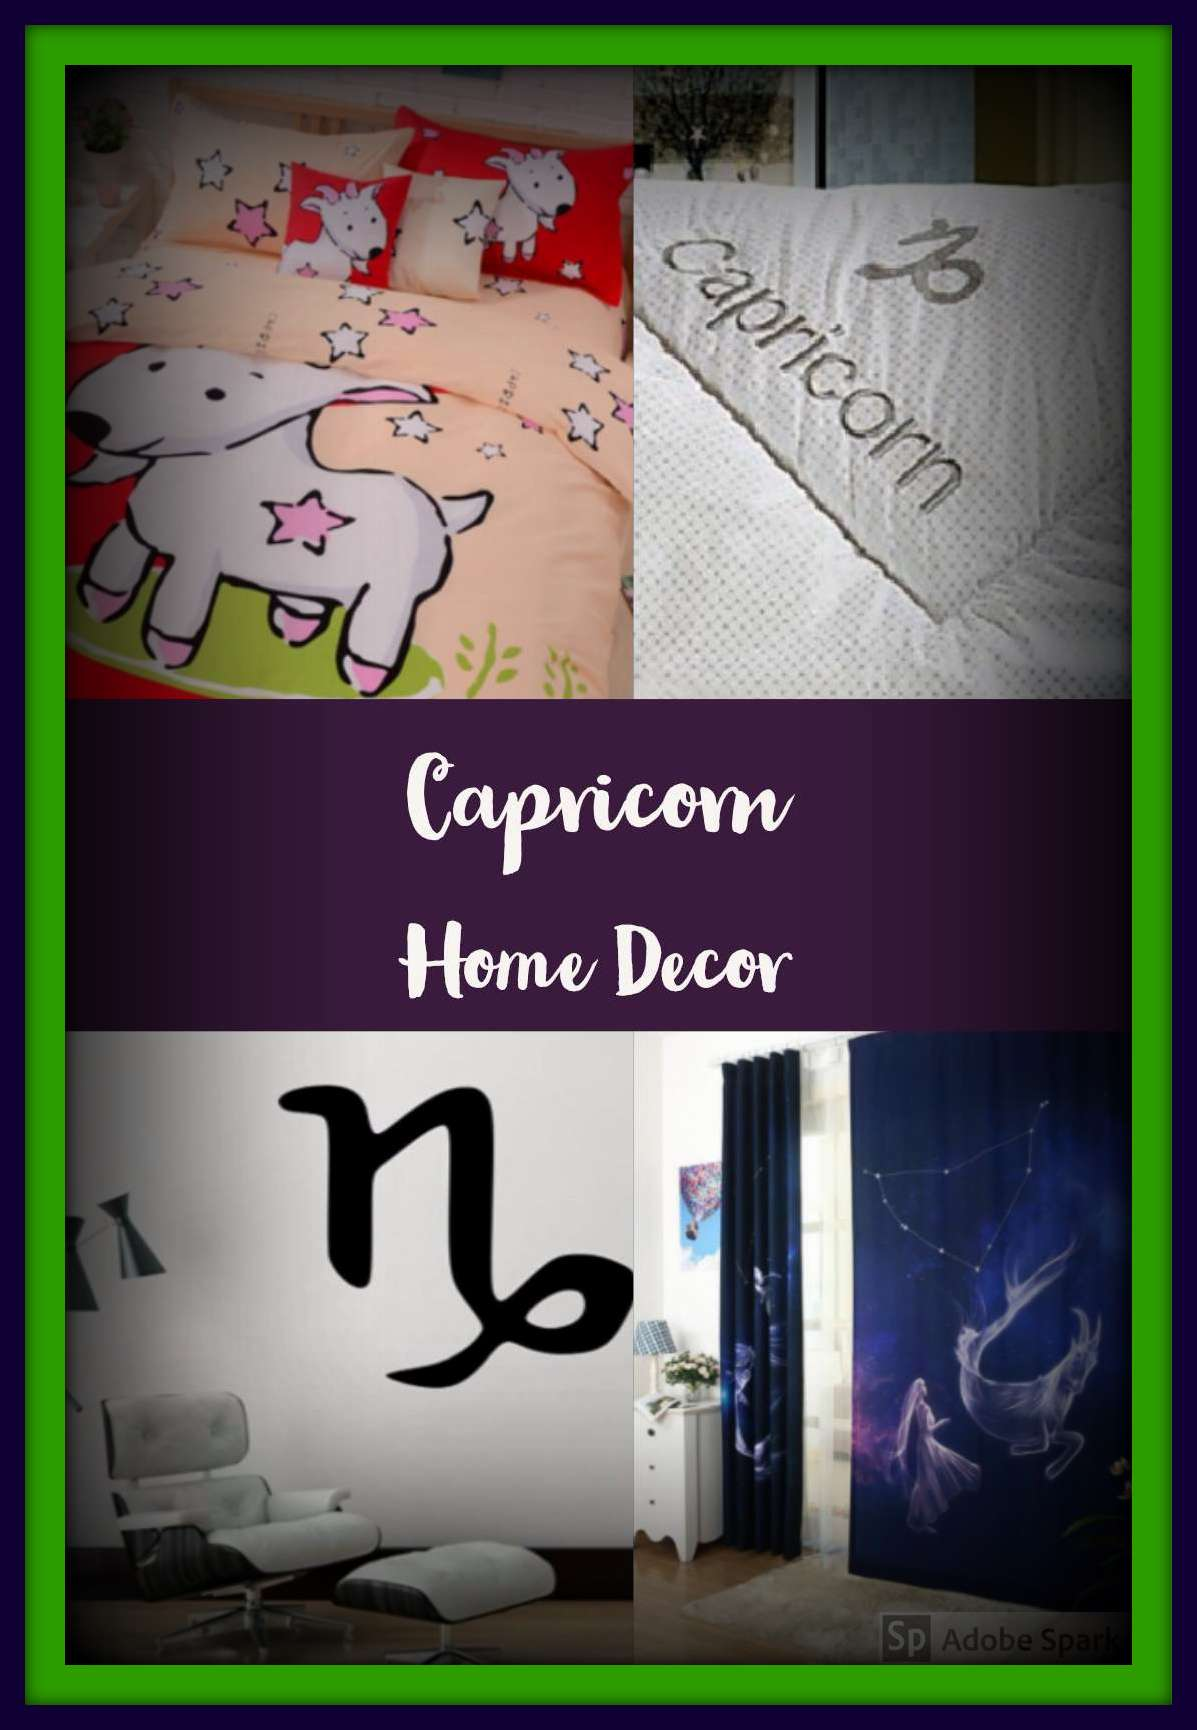 Capricorn Home Decor Items for a Themed Room